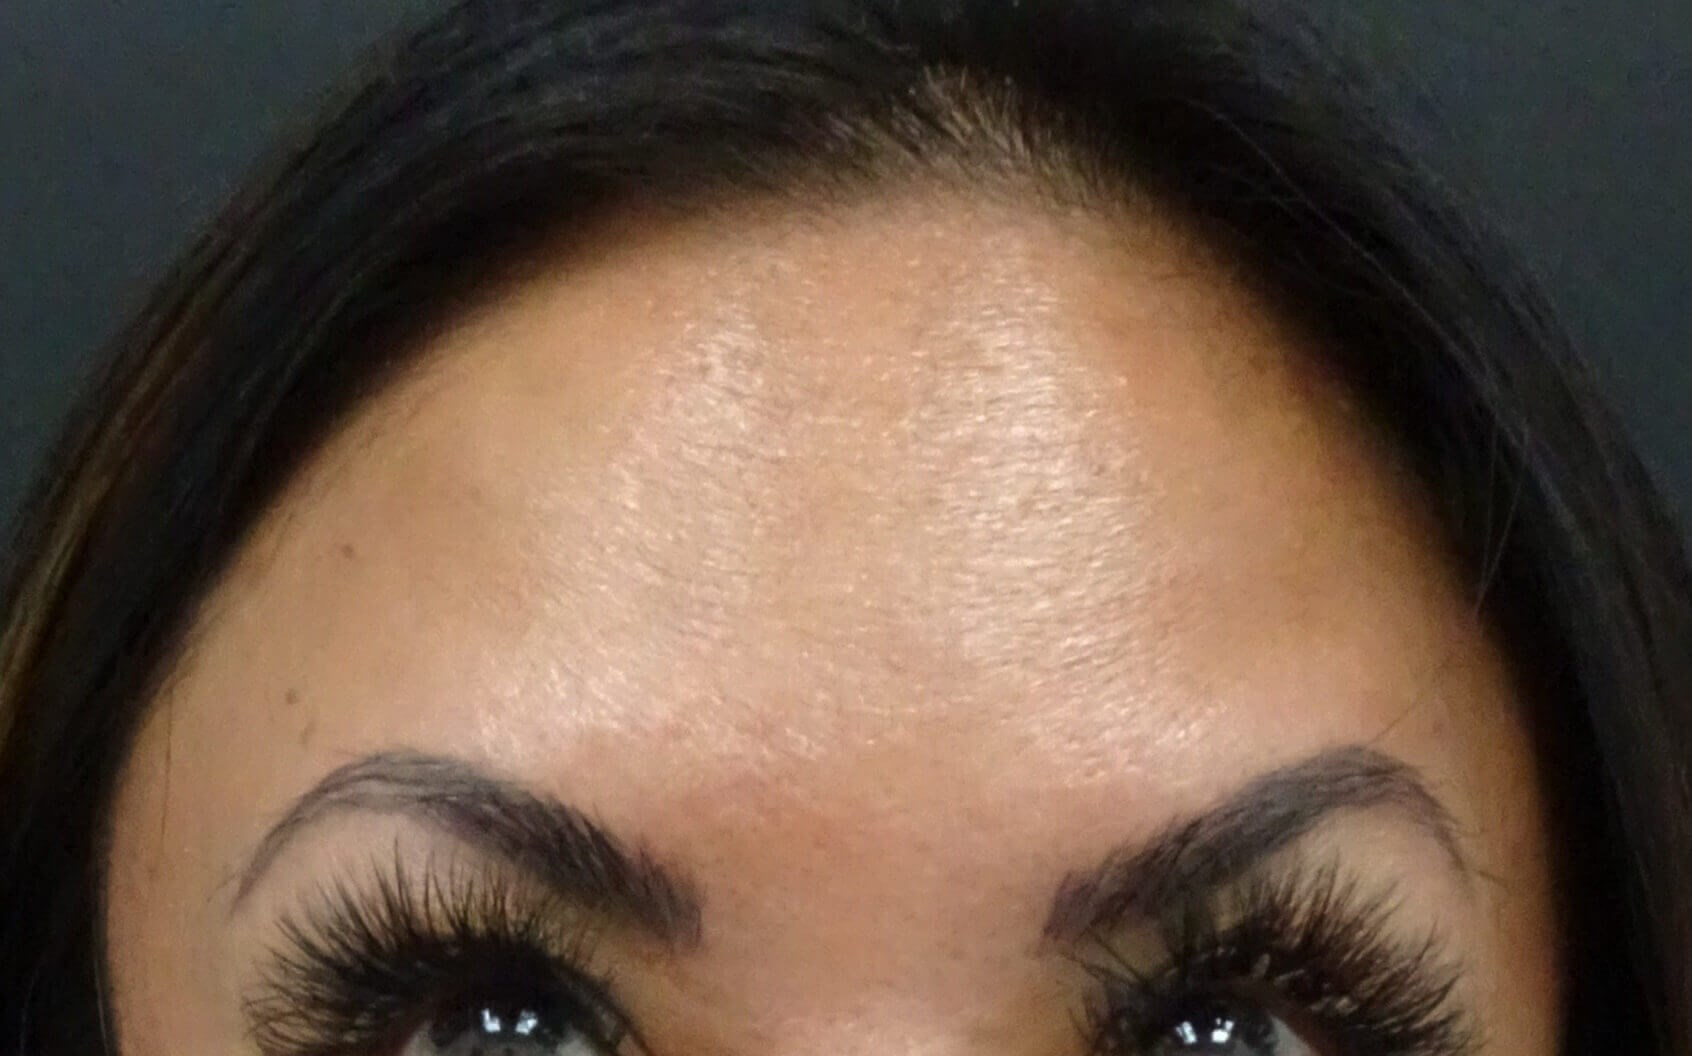 Las Vegas Botox for forehead After Botox & Dr. Lee